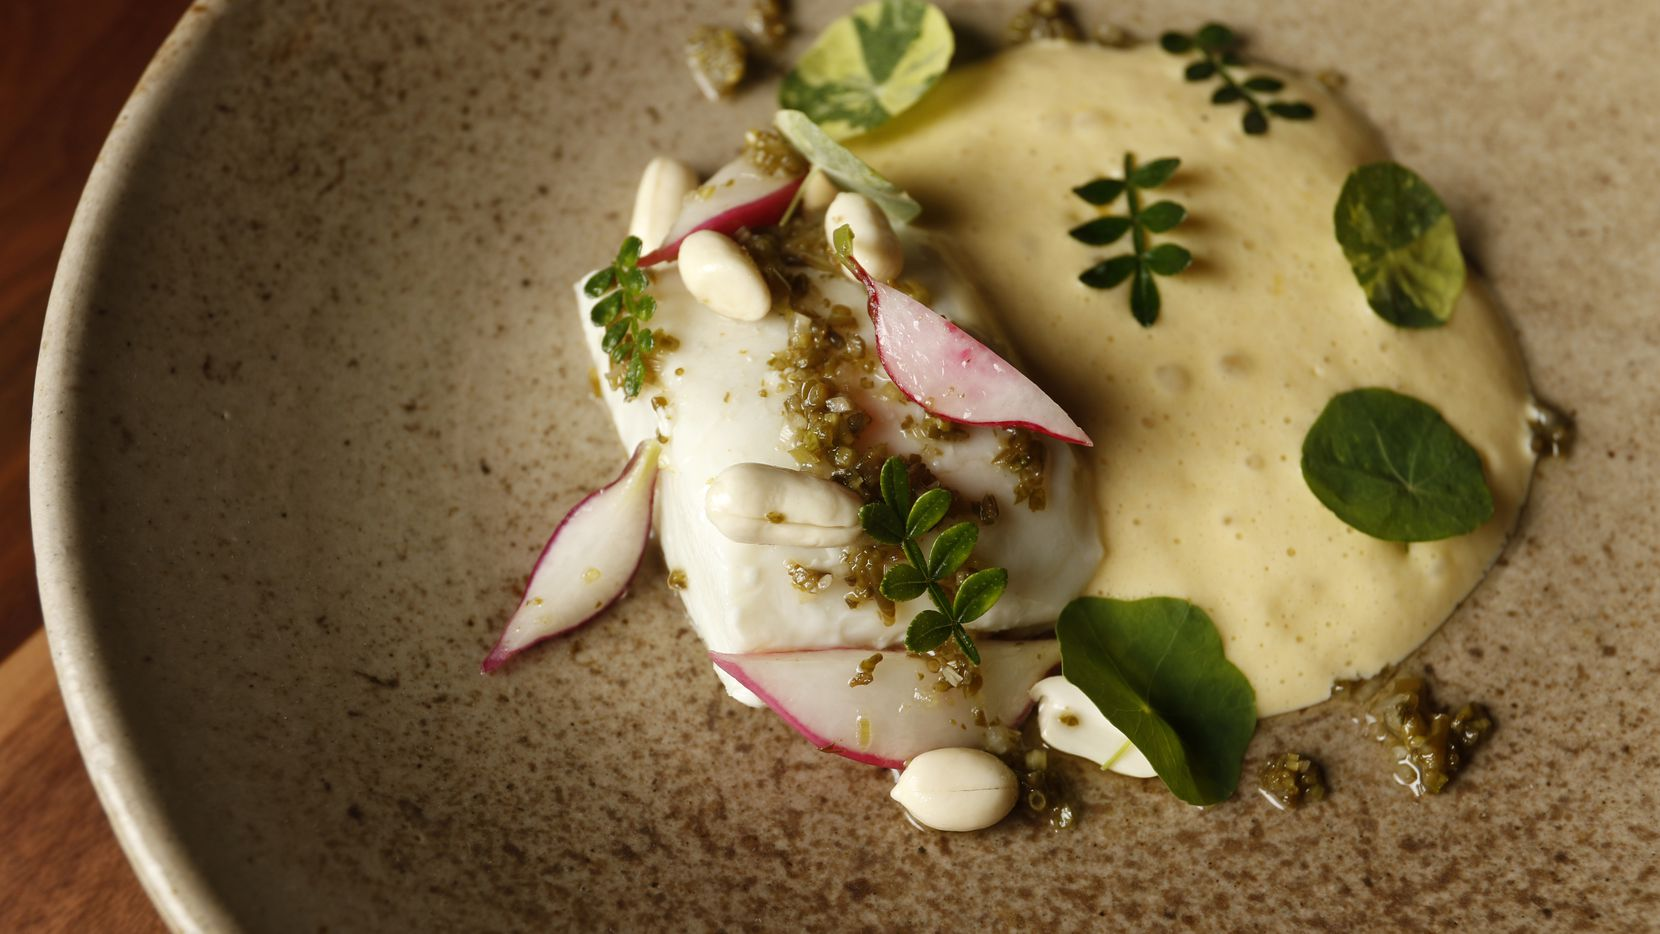 Warm halibut with savory sabayon, pickled sea bean relish, shaved radishes and green peanuts. Dallas' new Uchi is not merely a pretty good outpost of Tyson Cole's original in Austin, but a brilliant destination in its own right.